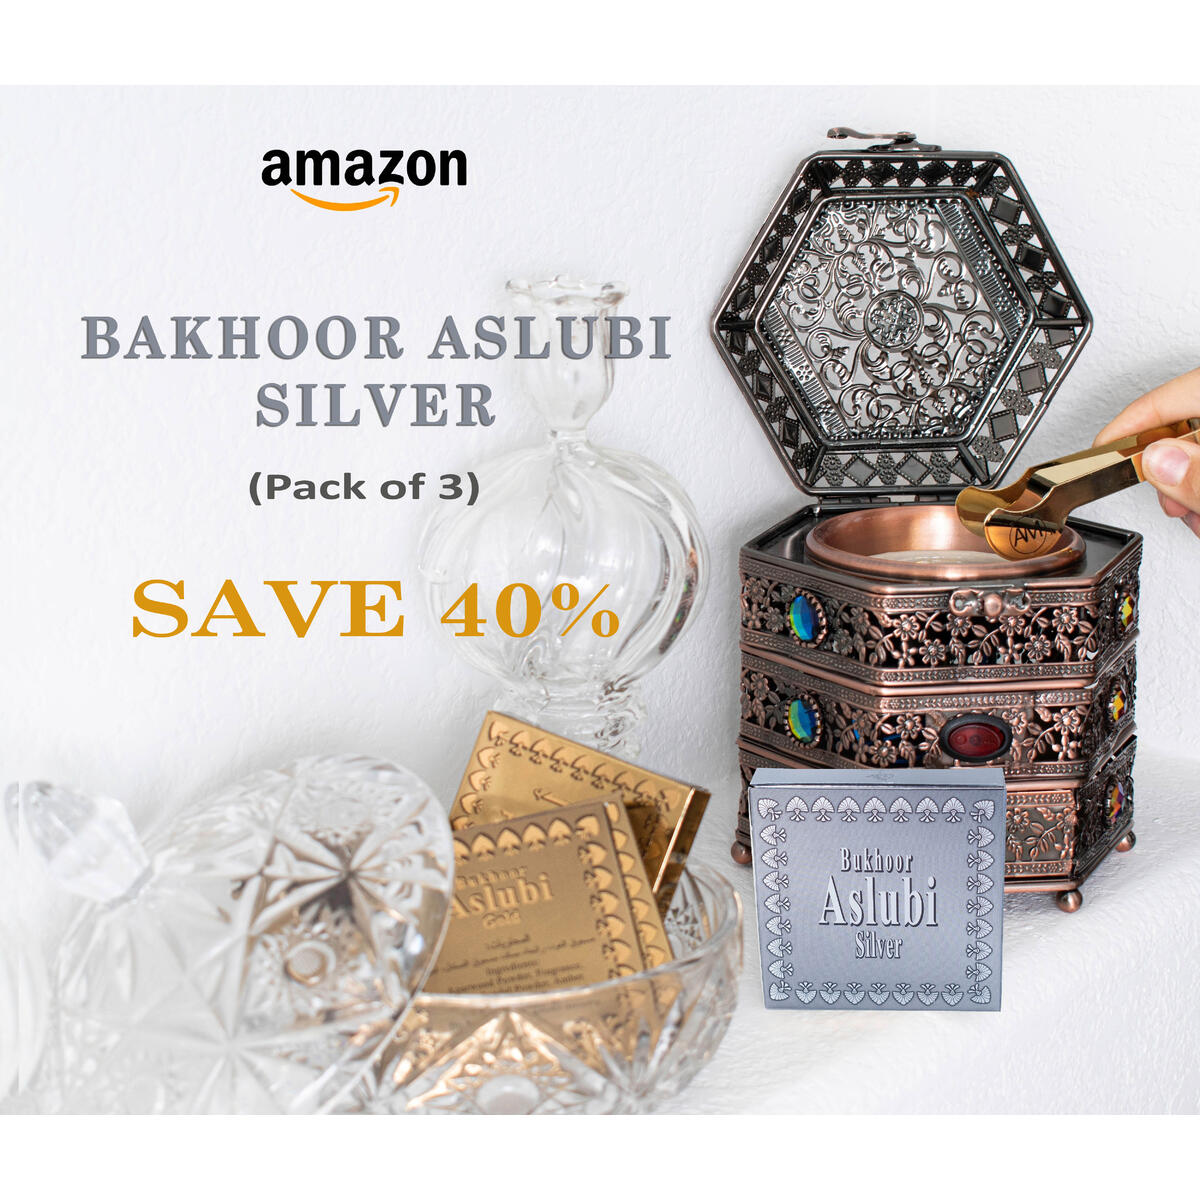 Otoori Aslubi Bakhoor Incense Silver - Arabian Bukhoor Use on Charcoal Incense Burner or Electric Insence Burner (3 Pack)